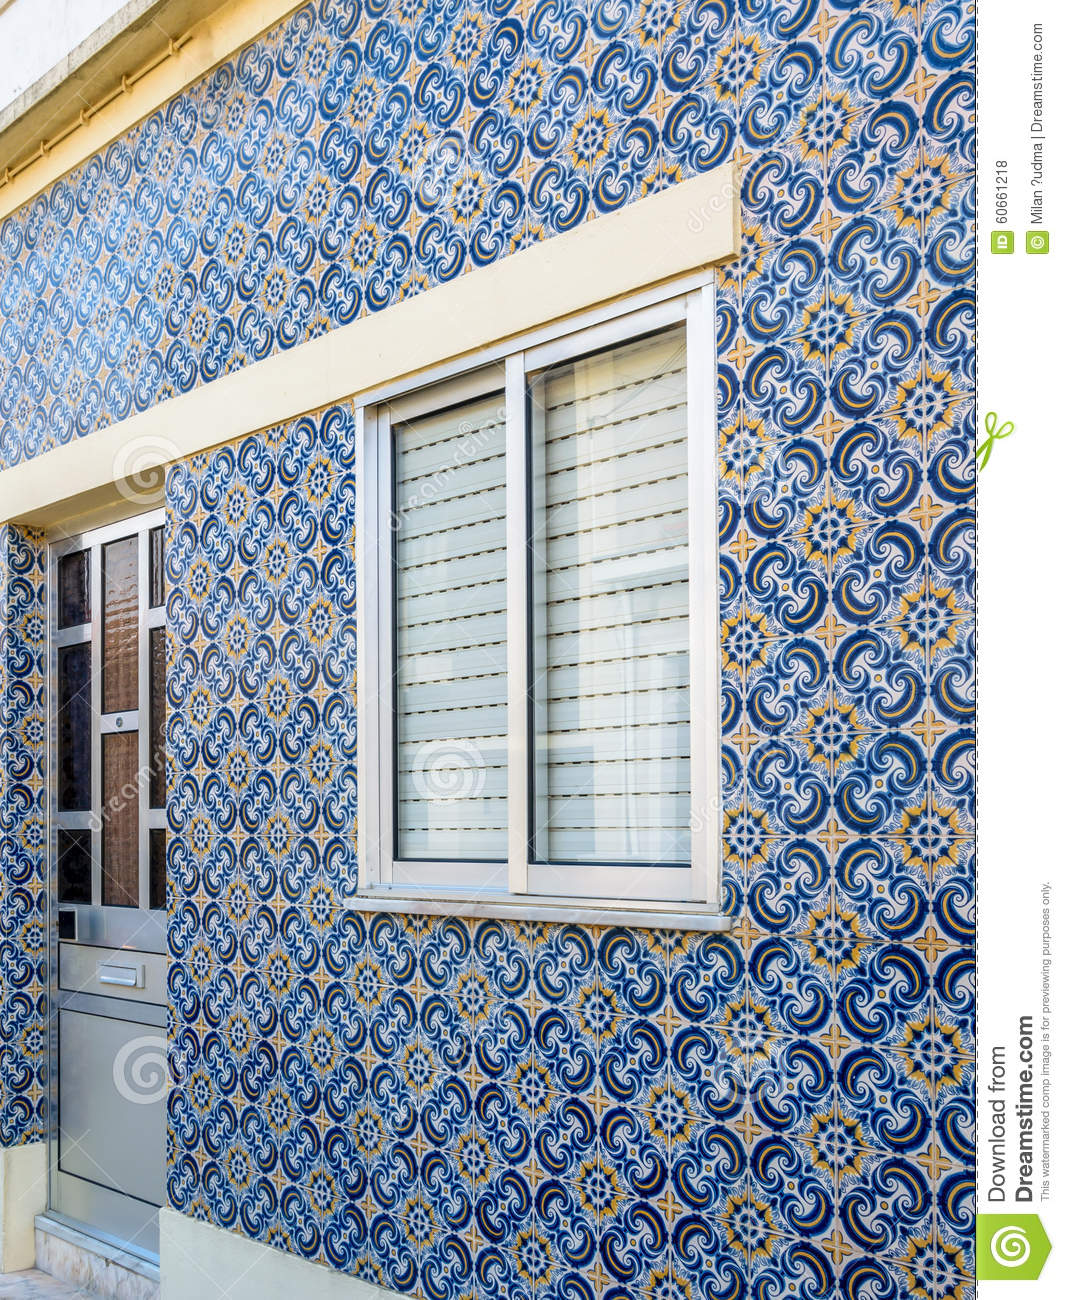 Portuguese tile house azulejo 5 stock photo image for Casa dos azulejos lisboa